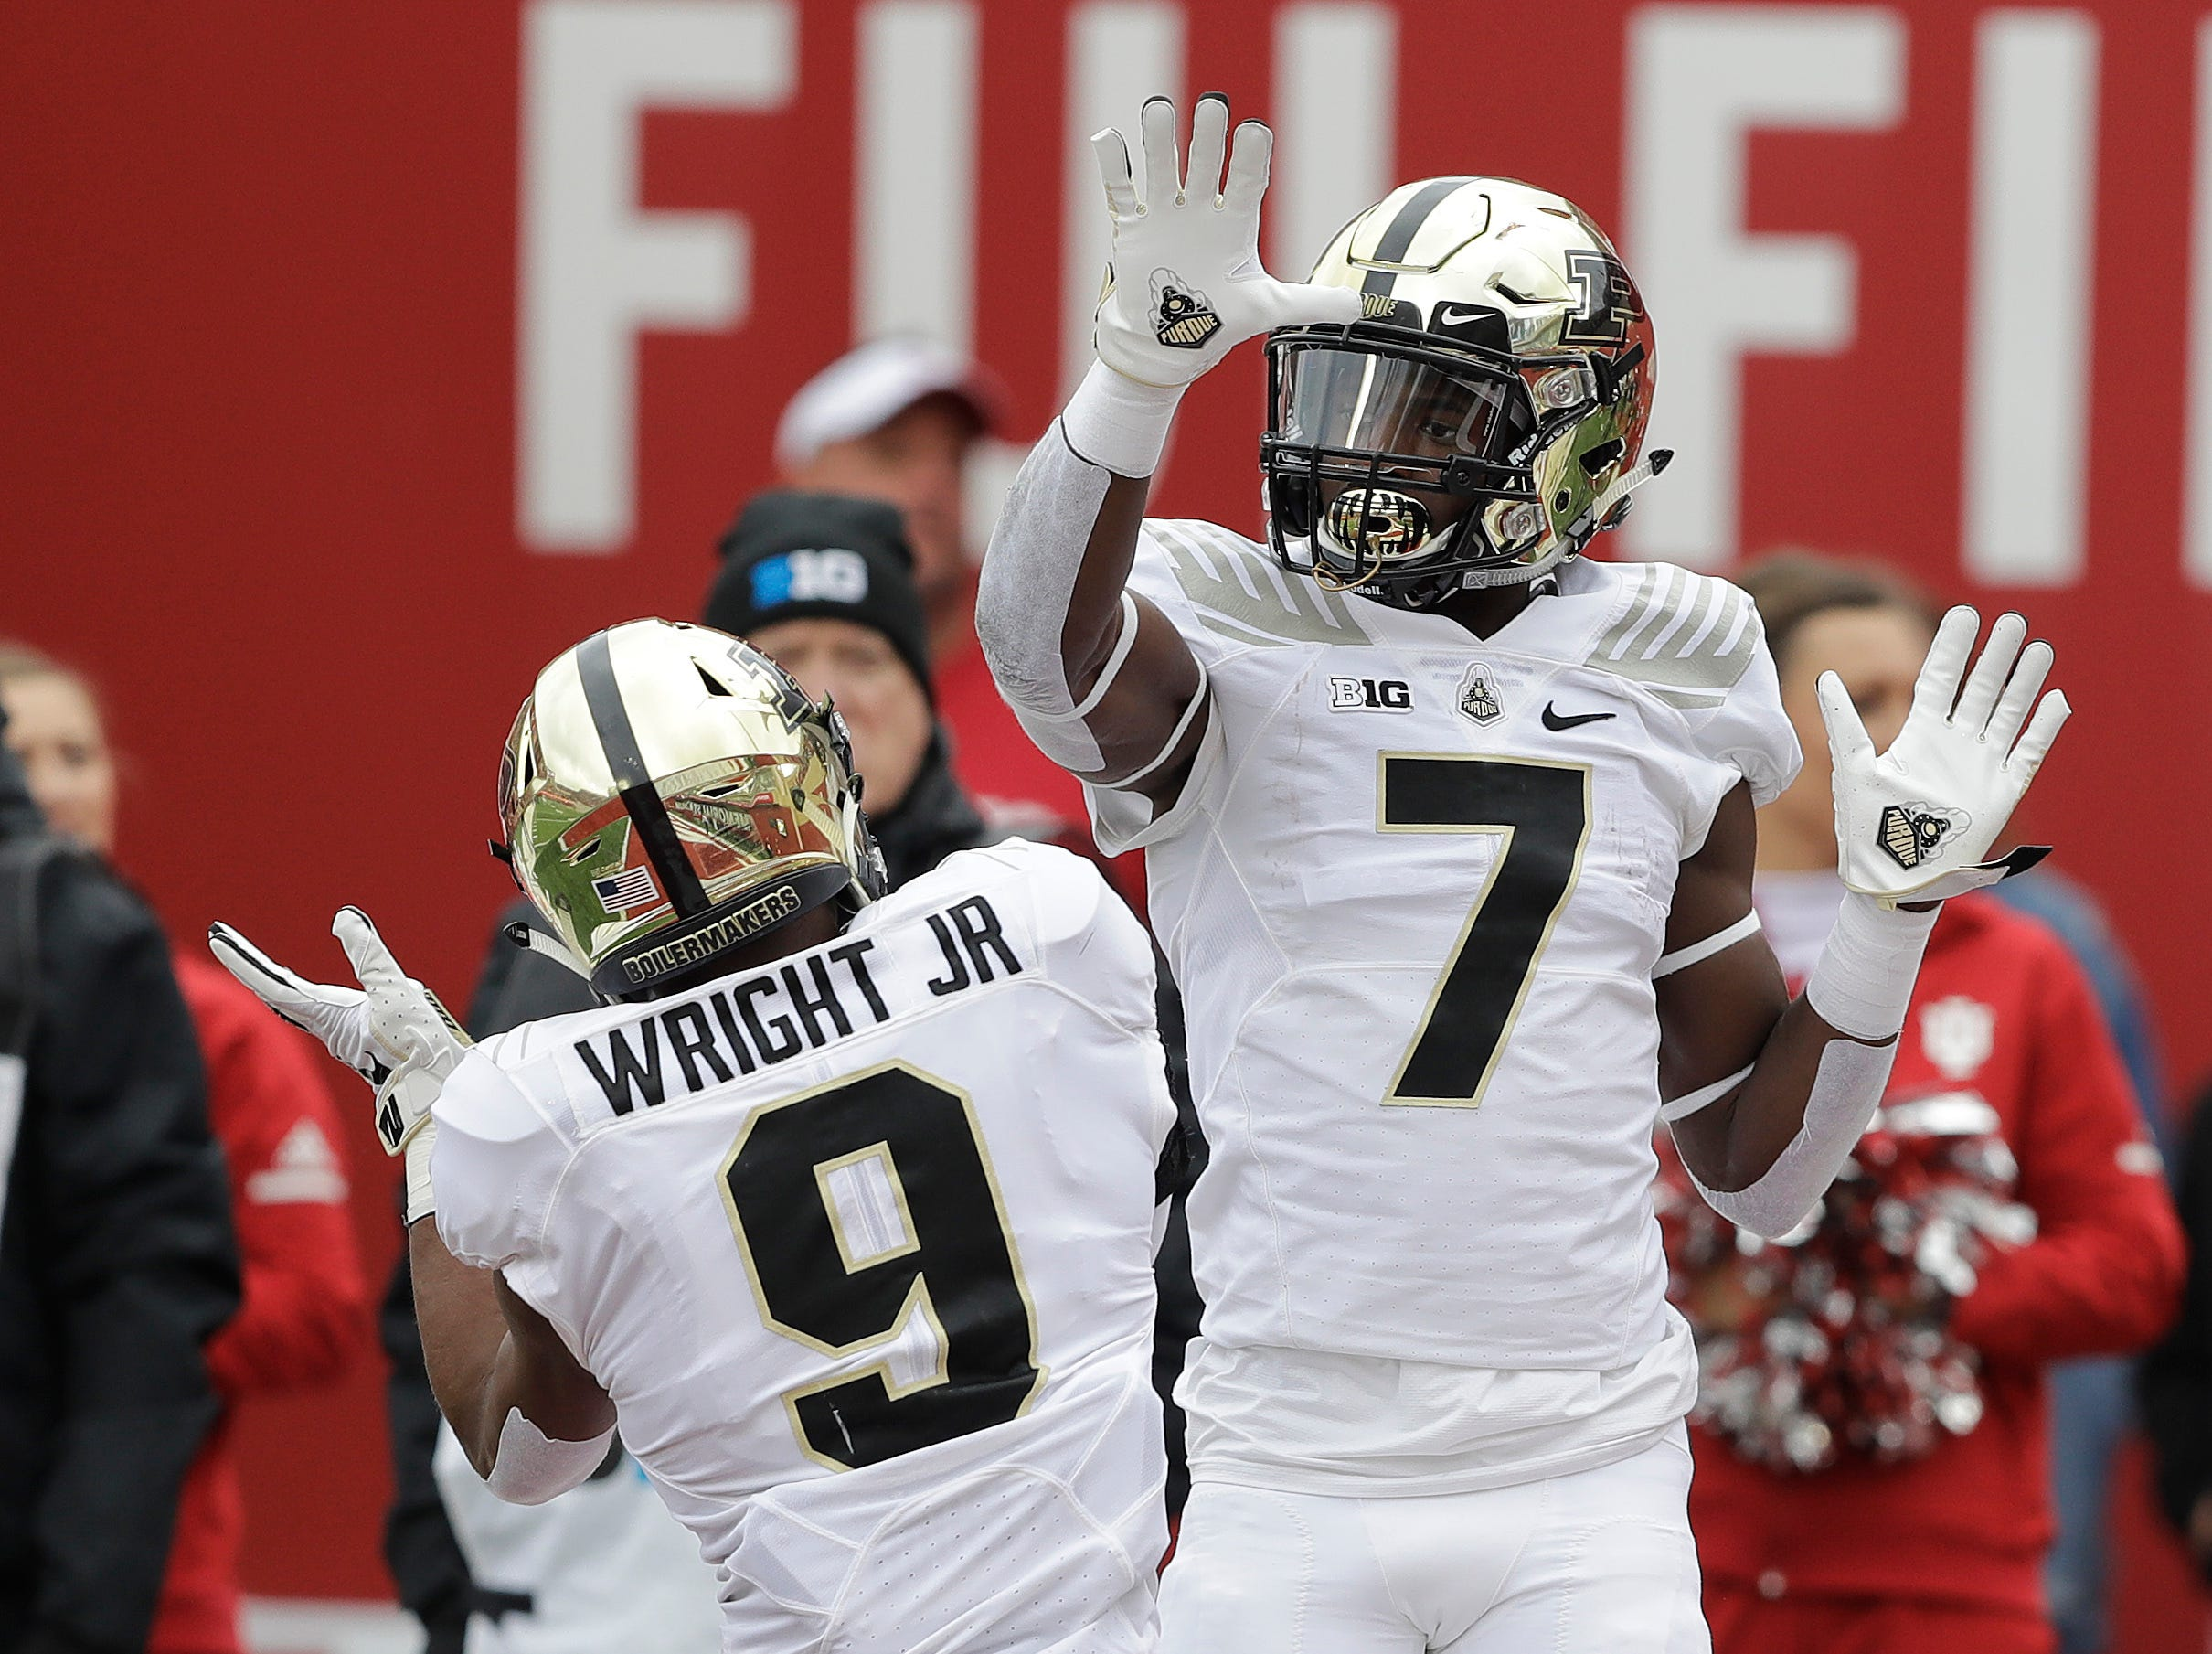 Purdue wide receiver Isaac Zico (7) celebrates a touchdown reception with Terry Wright during the first half of an NCAA college football game against Indiana, Saturday, Nov. 24, 2018, in Bloomington, Ind. (AP Photo/Darron Cummings)